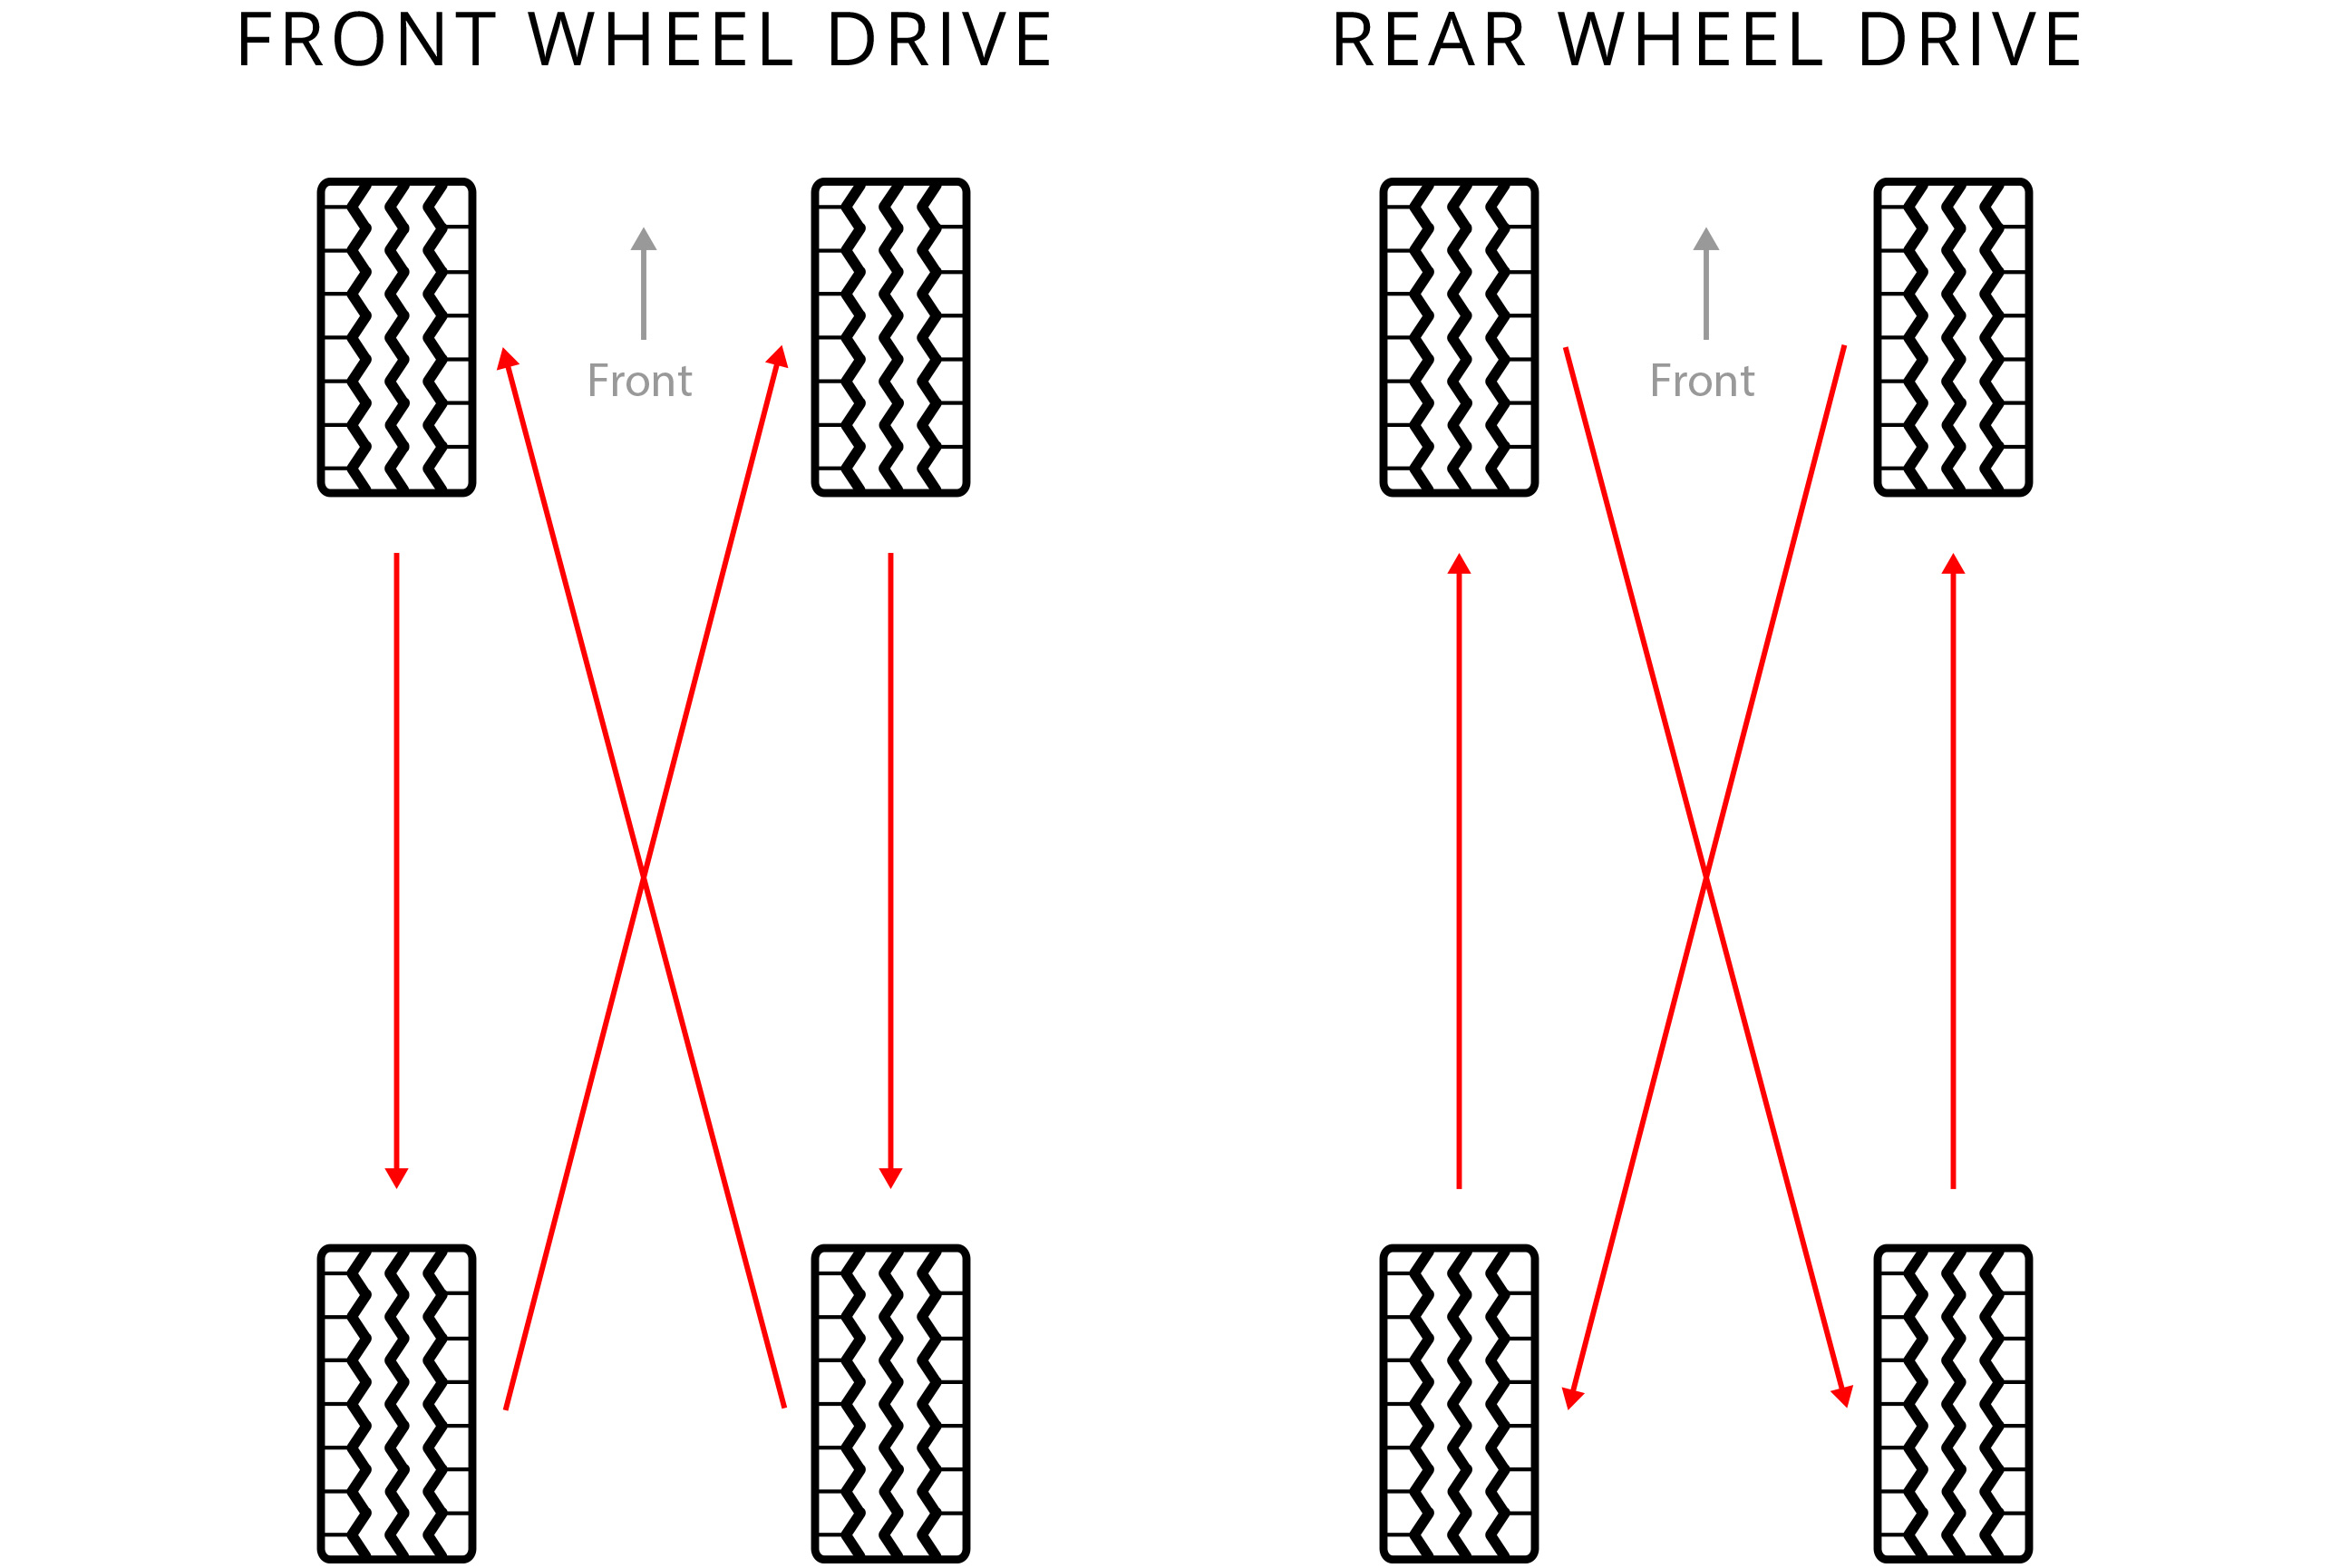 Tire Rotation - Tire Alignment, Balance, & Rotation Information